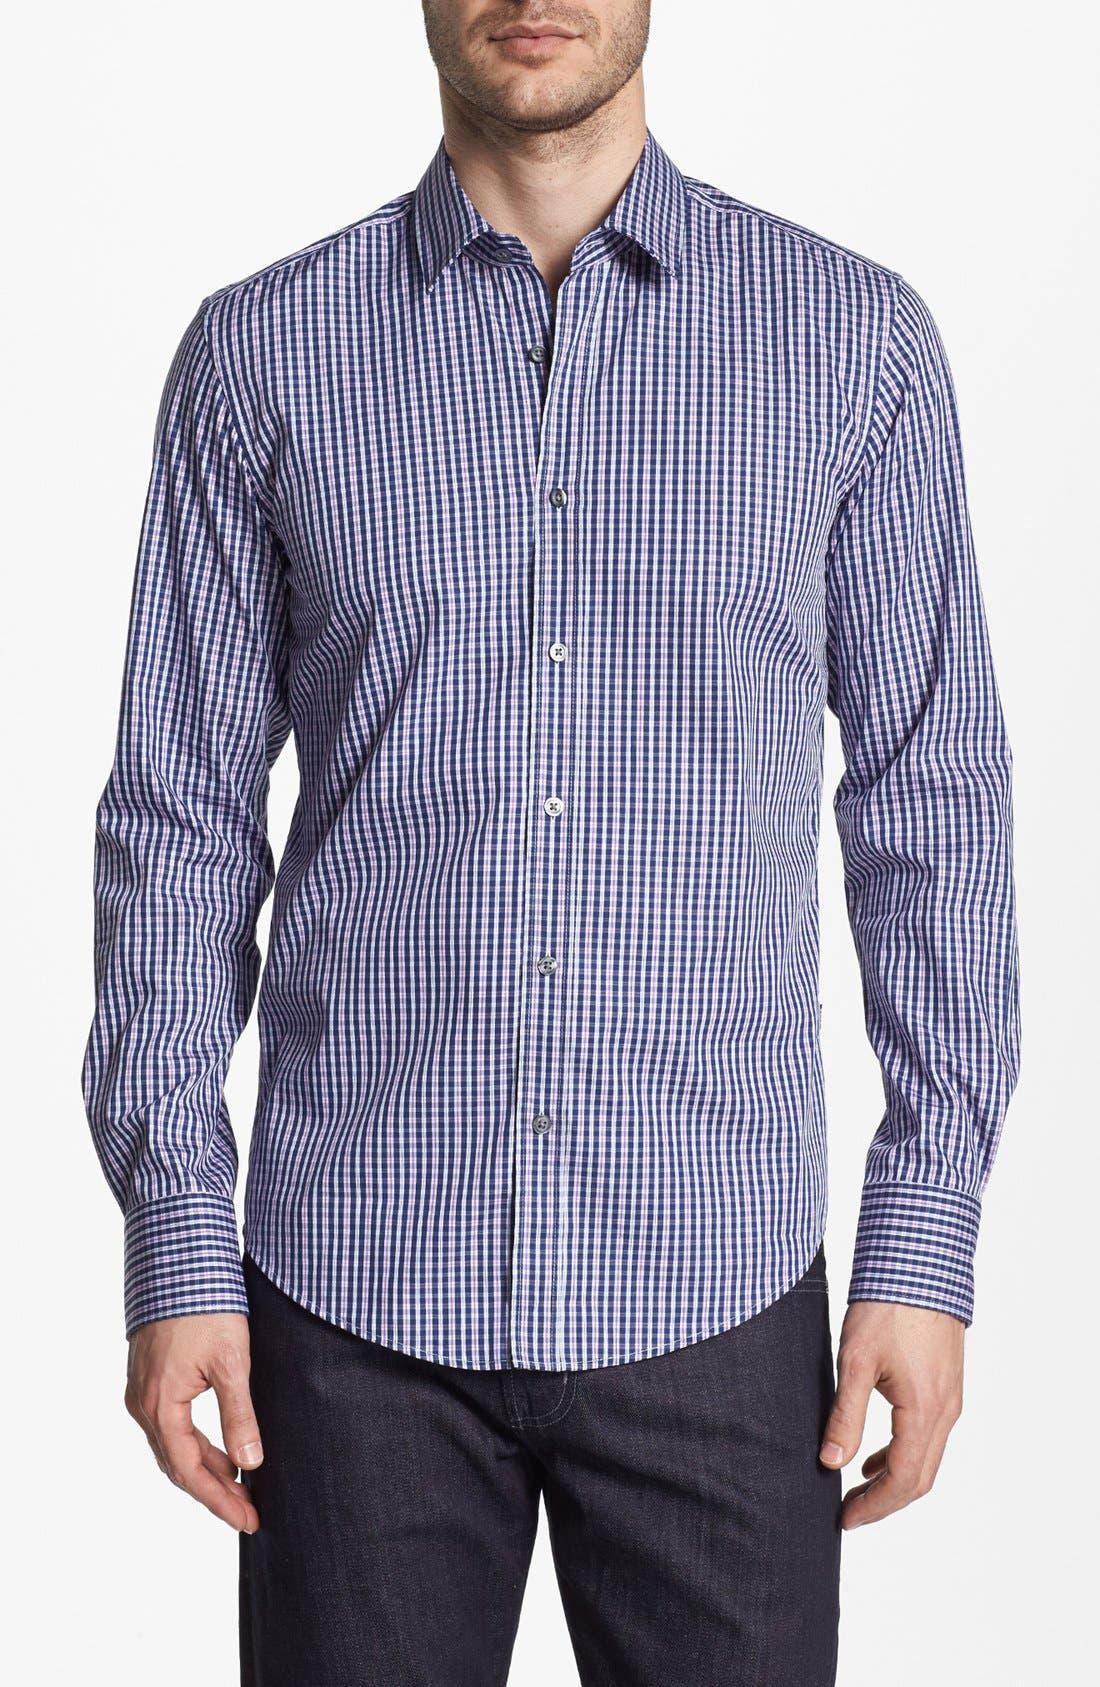 Main Image - BOSS HUGO BOSS 'Ronny' Slim Fit Sport Shirt